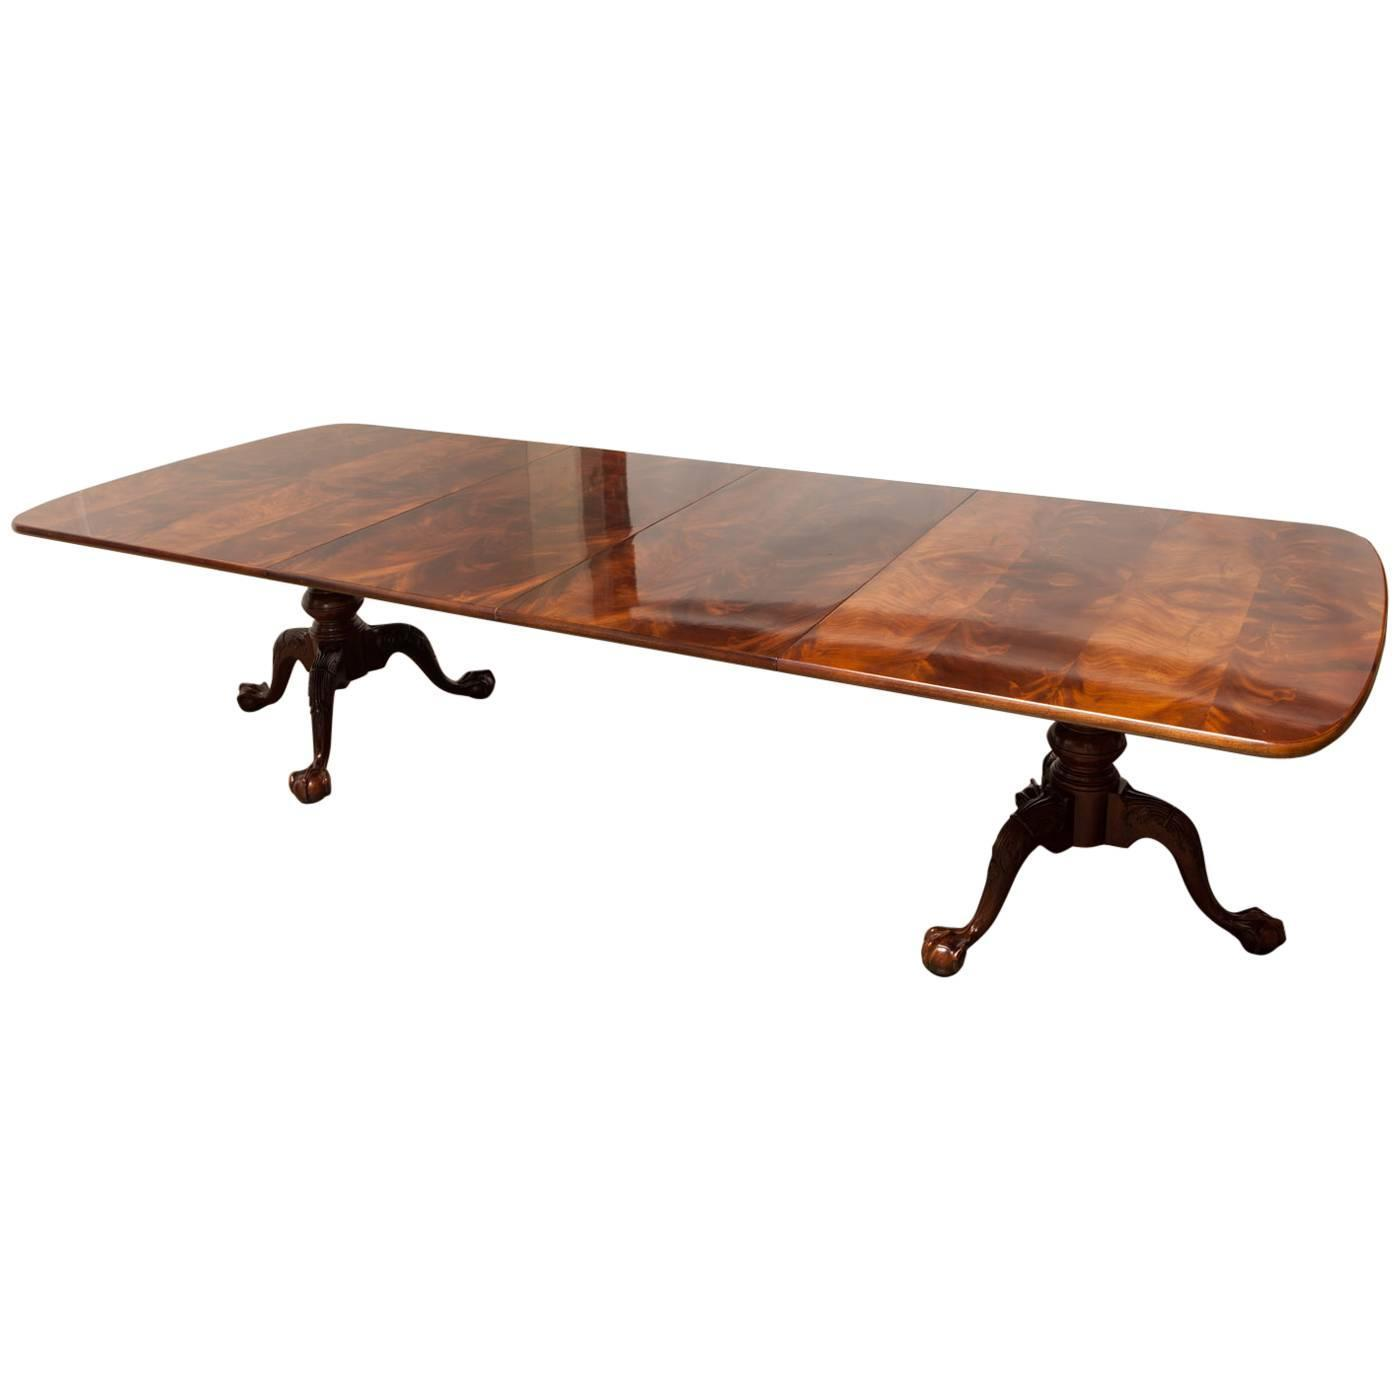 Fine Georgian Two Pedestal Mahogany Dining Table by Henredon at